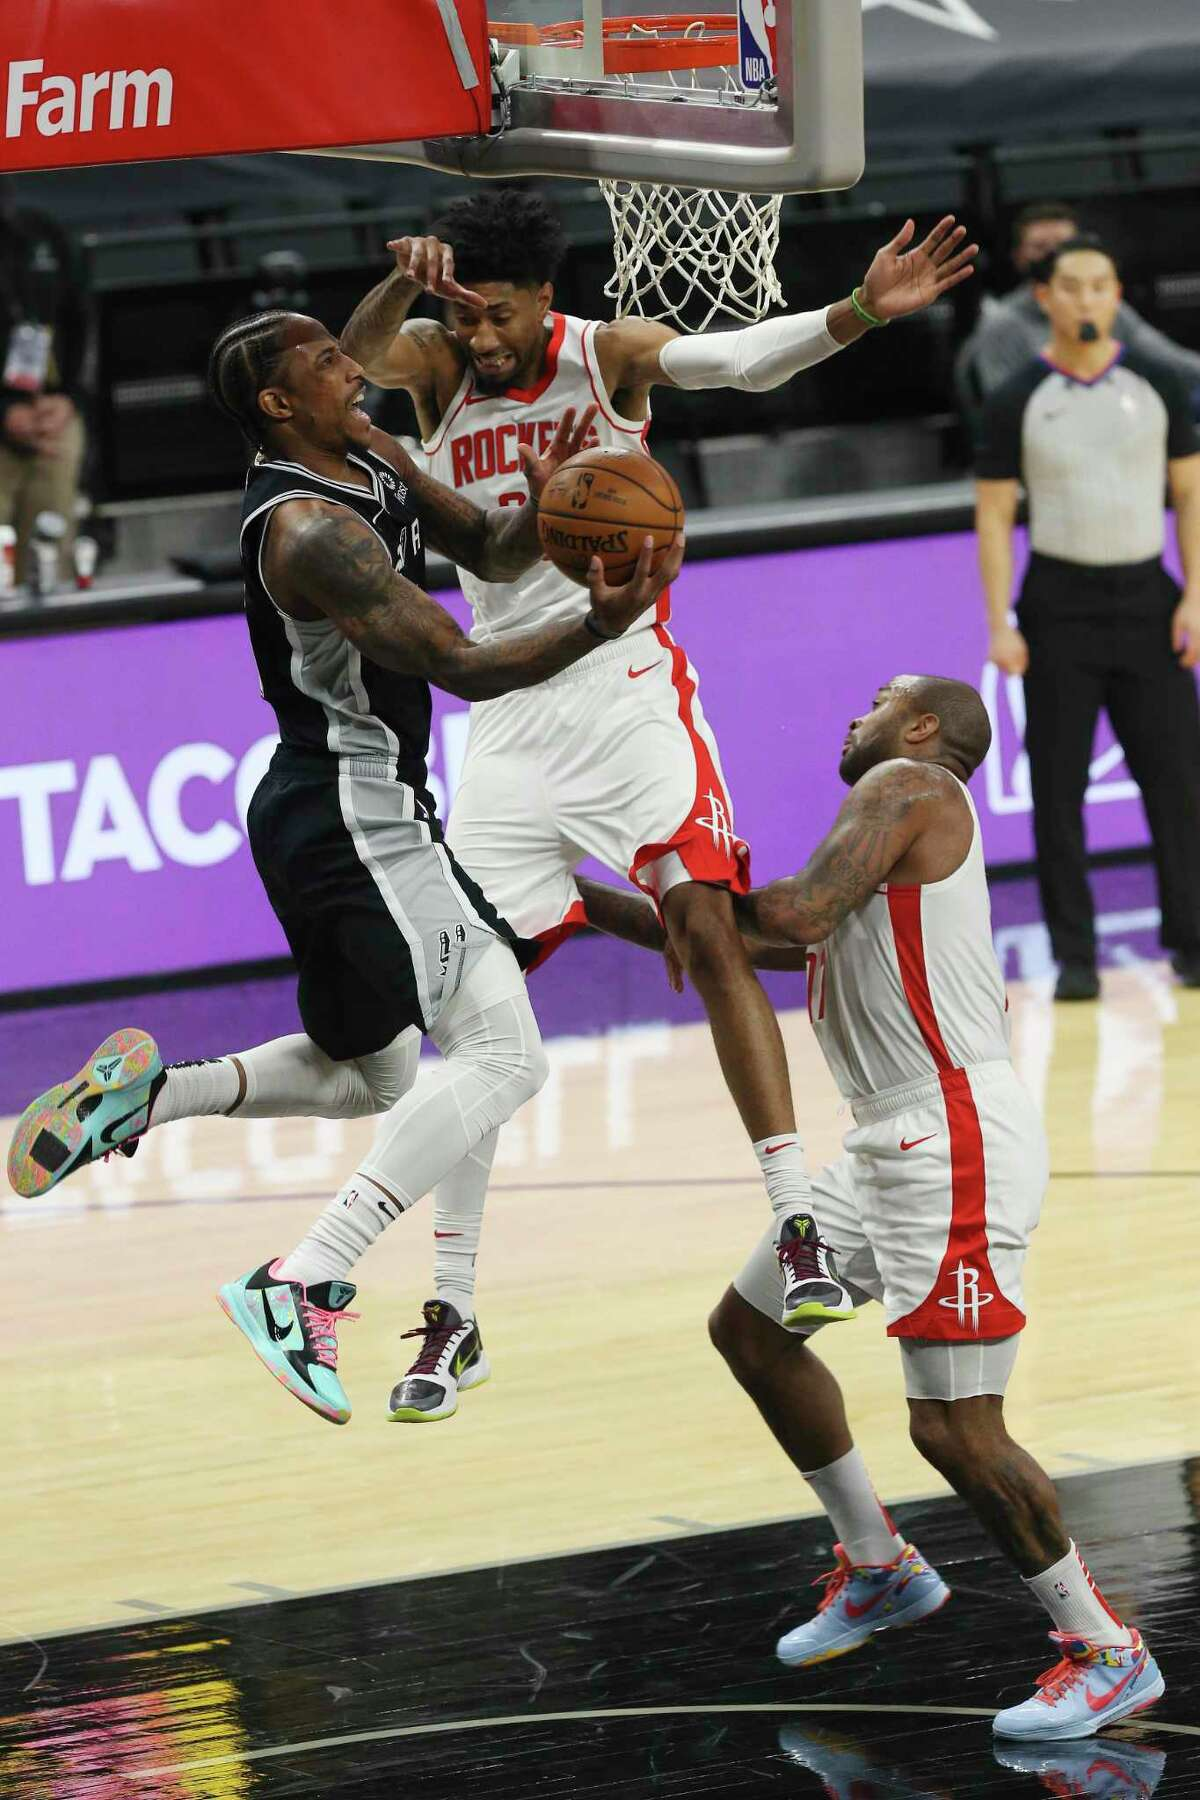 San Antonio Spurs' DeMar DeRozan goes under the basket as Houston Rockets' Christian Wood defends during the first quarter at the AT&T Center, Thursday, Jan. 14, 2021.